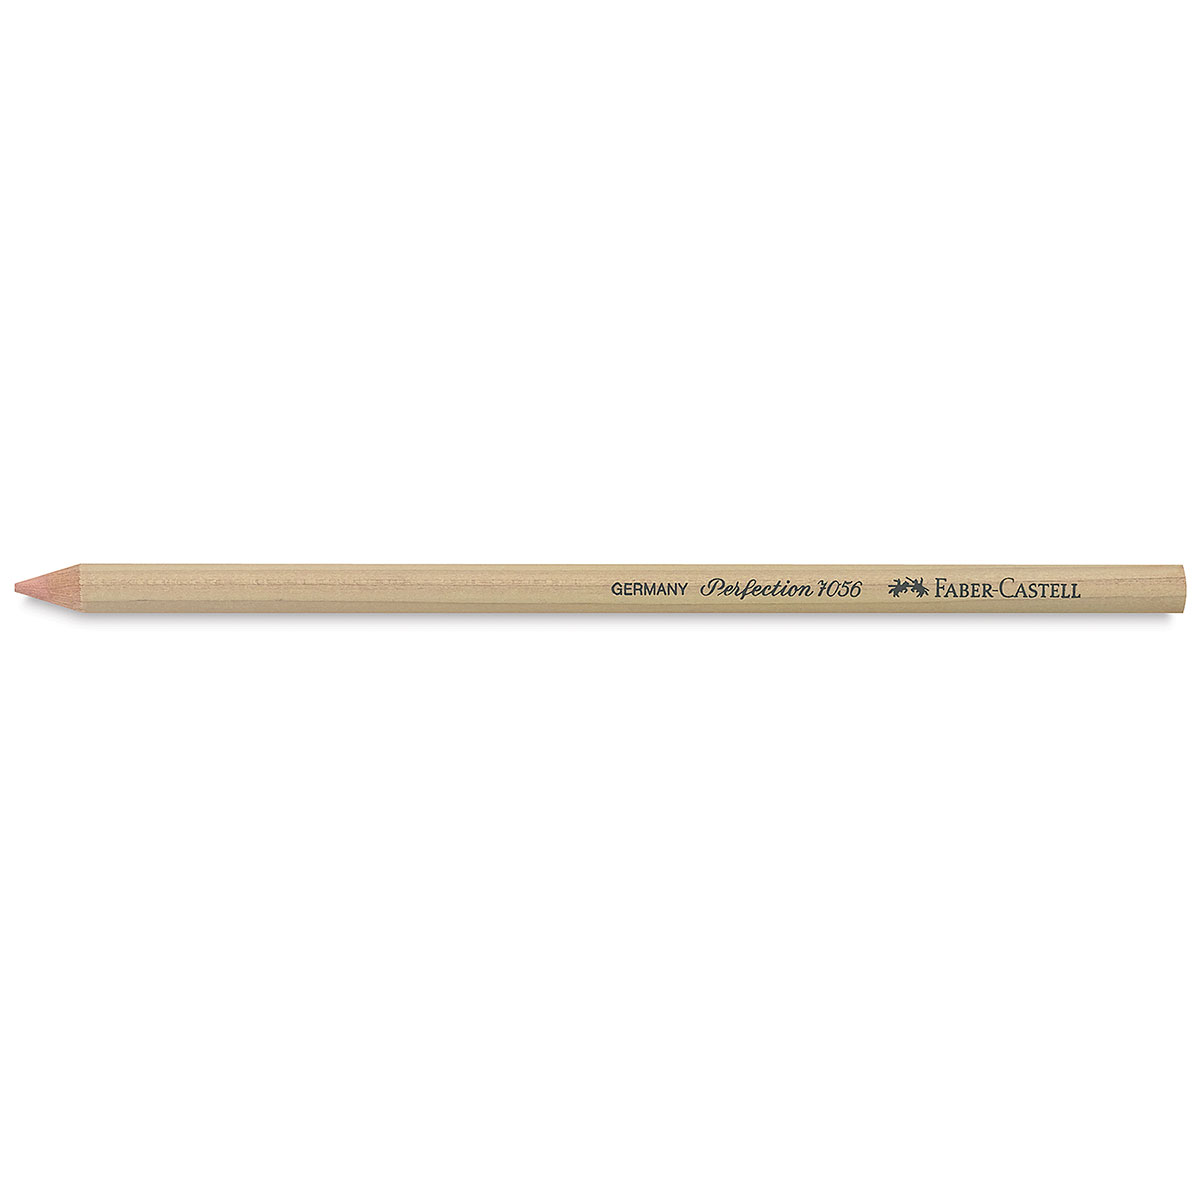 POPULAR Brand New HARD TO FIND Double Ended Perfection Eraser Pencil